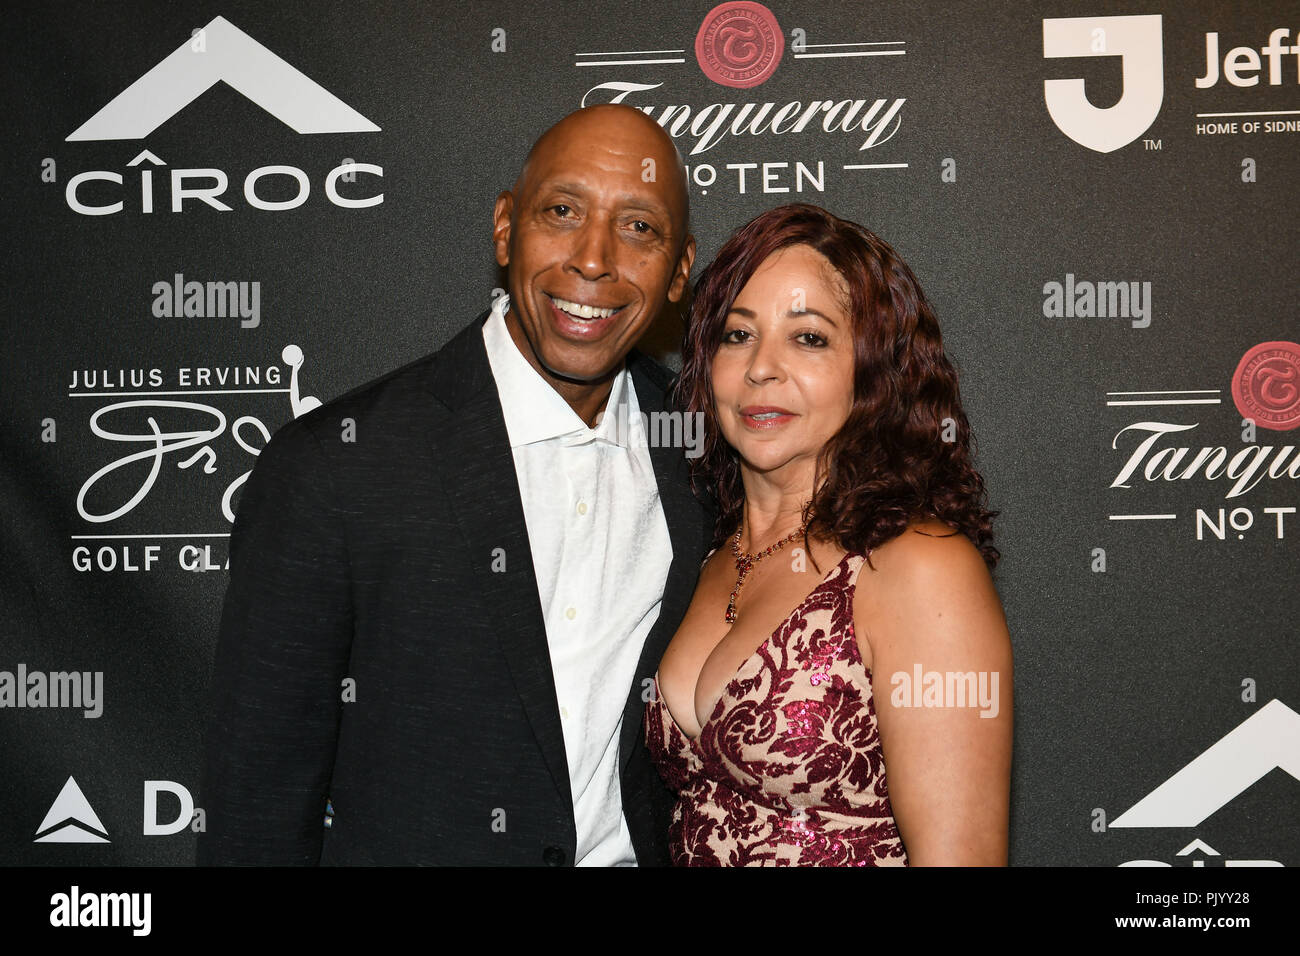 Julius Erving And Wife Stock Photos & Julius Erving And Wife